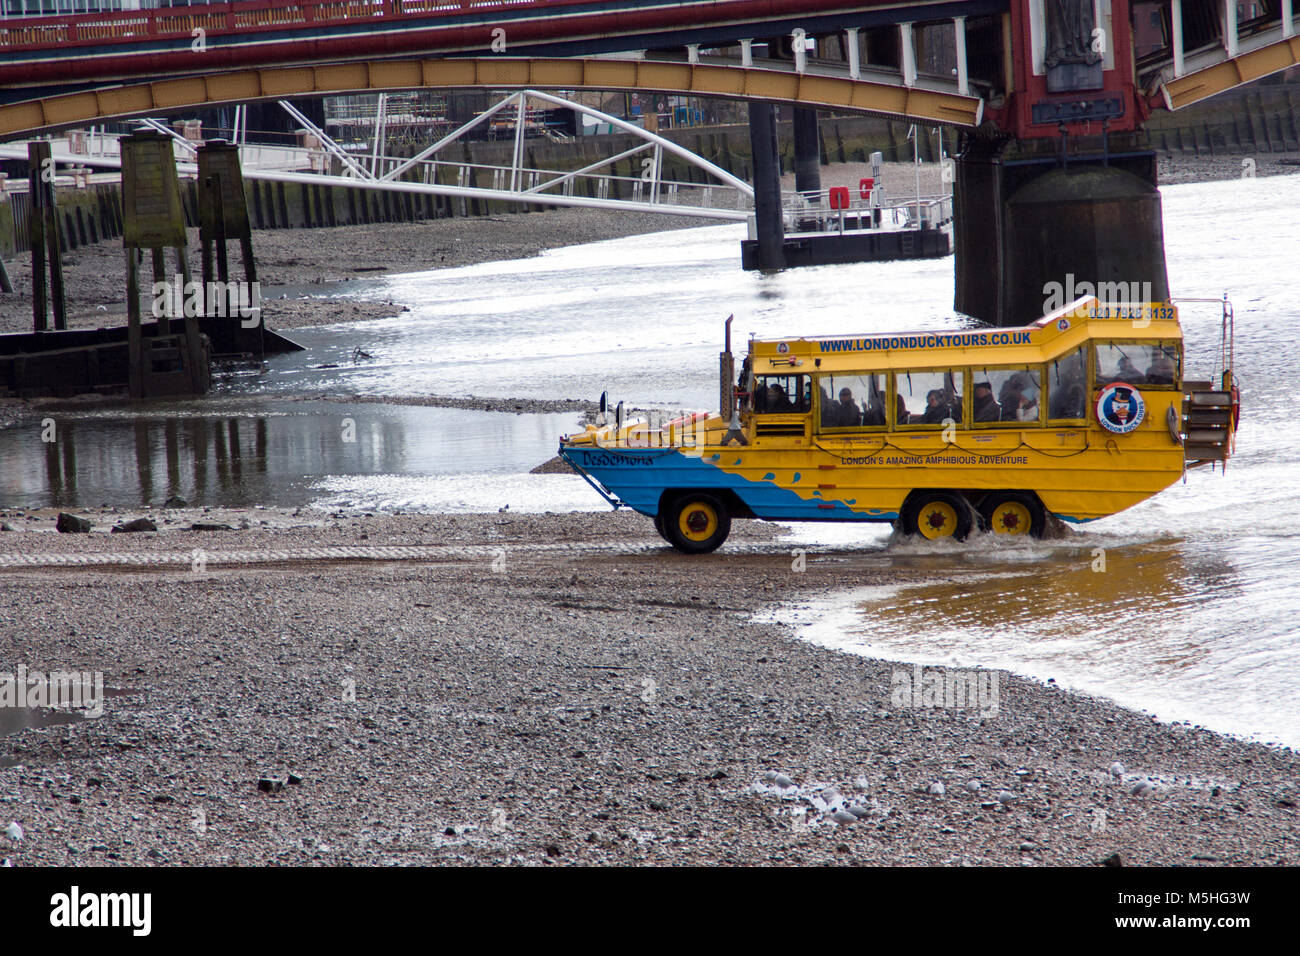 A yellow amphibian tour vehicle called a Duck, leaving the River Thames, London, England, UK. Credit: London Snapper - Stock Image